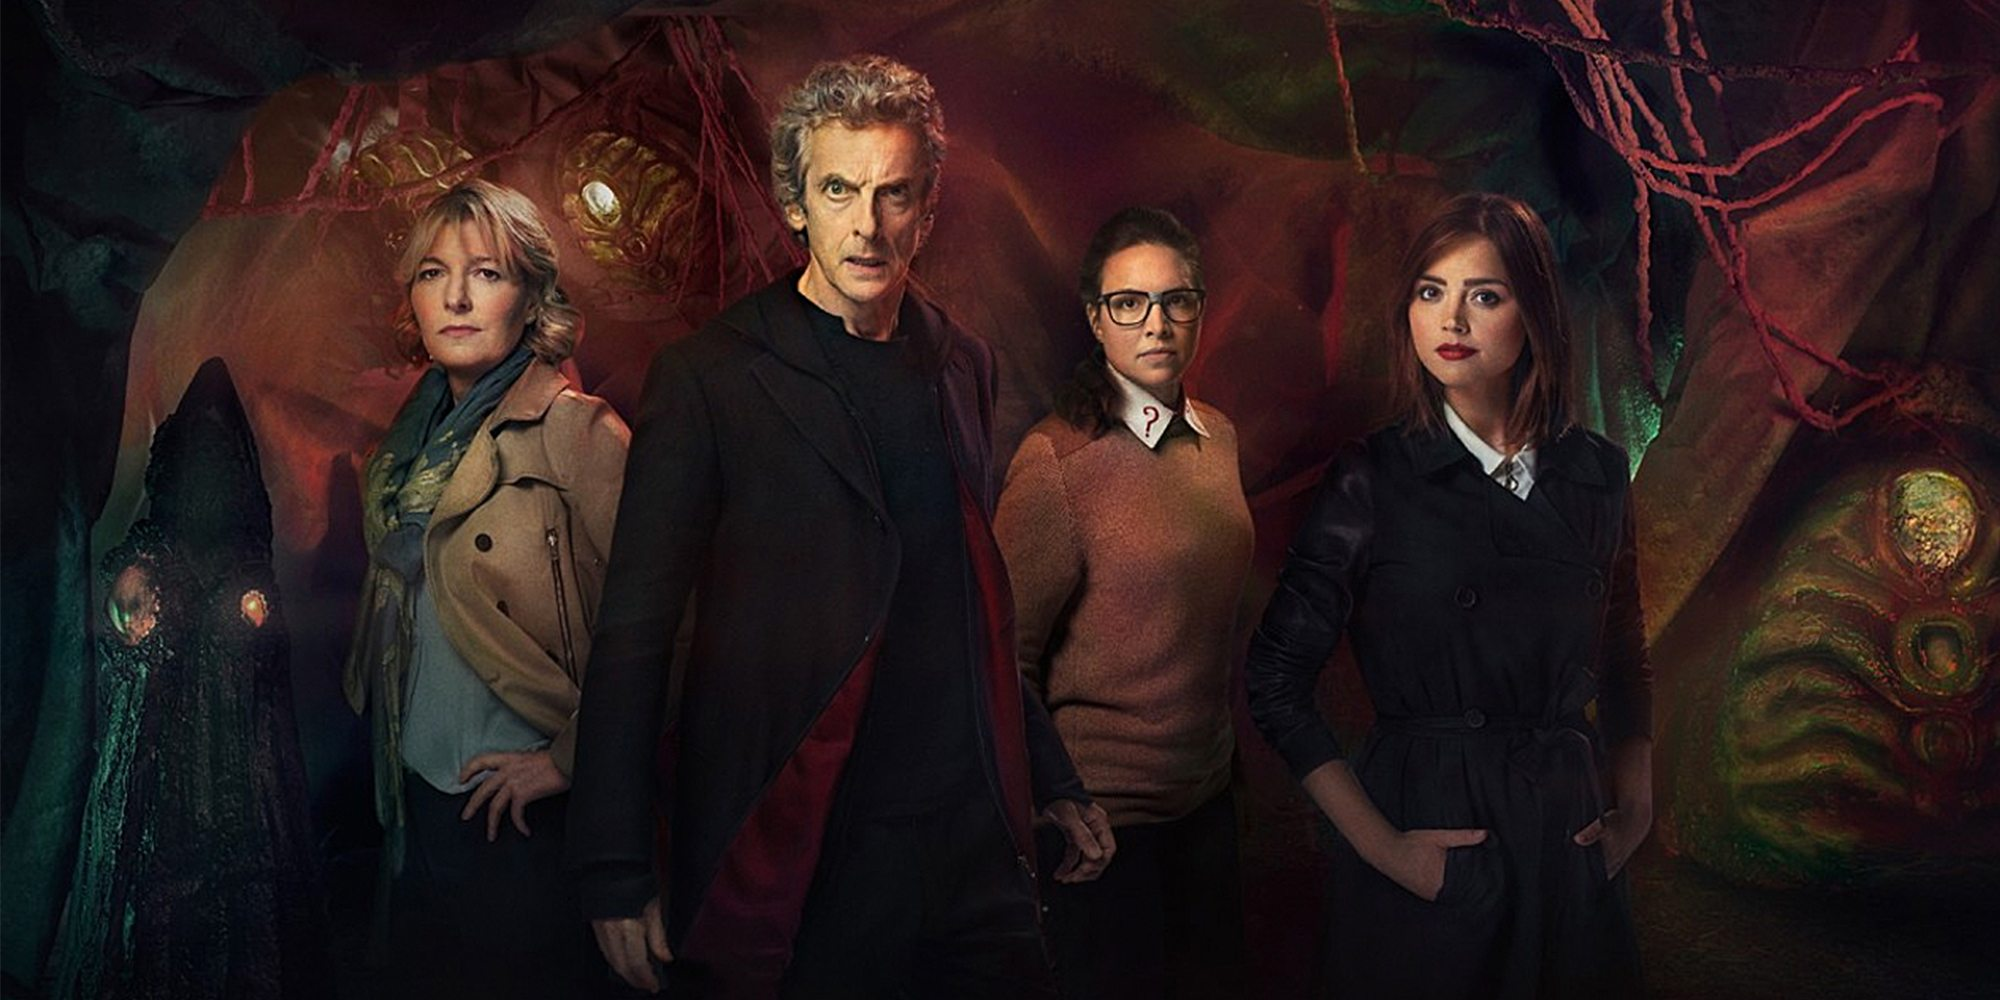 'Doctor Who' Zygon Two-Parter Gets Emotional About War